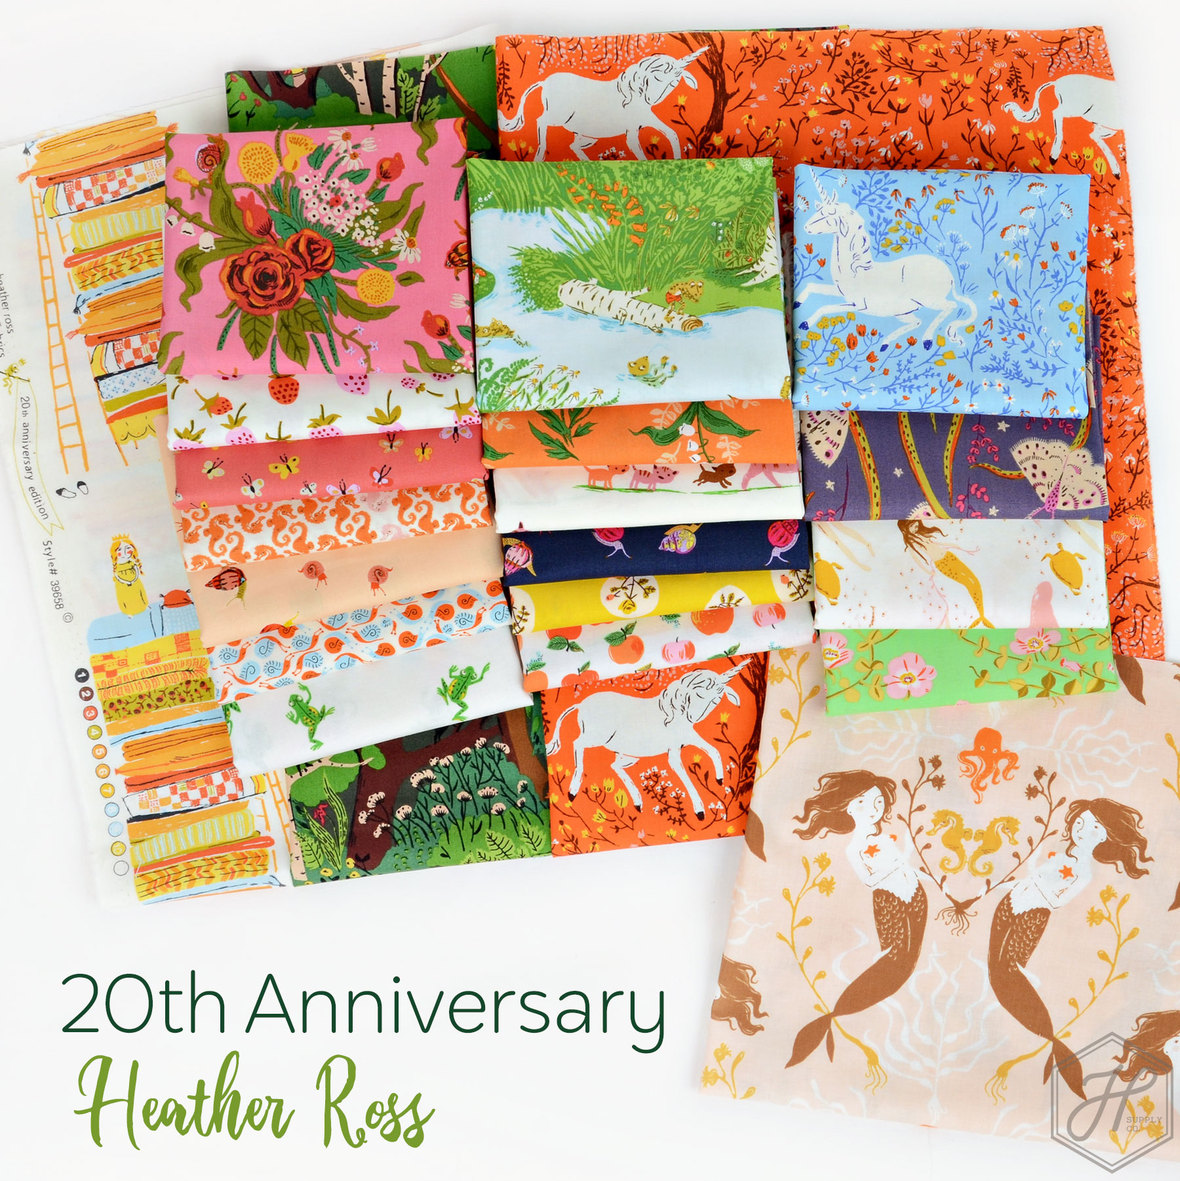 Heather-Ross-20th-Anniversary-Fabric-at-Hawthorne-Supply-Co-b